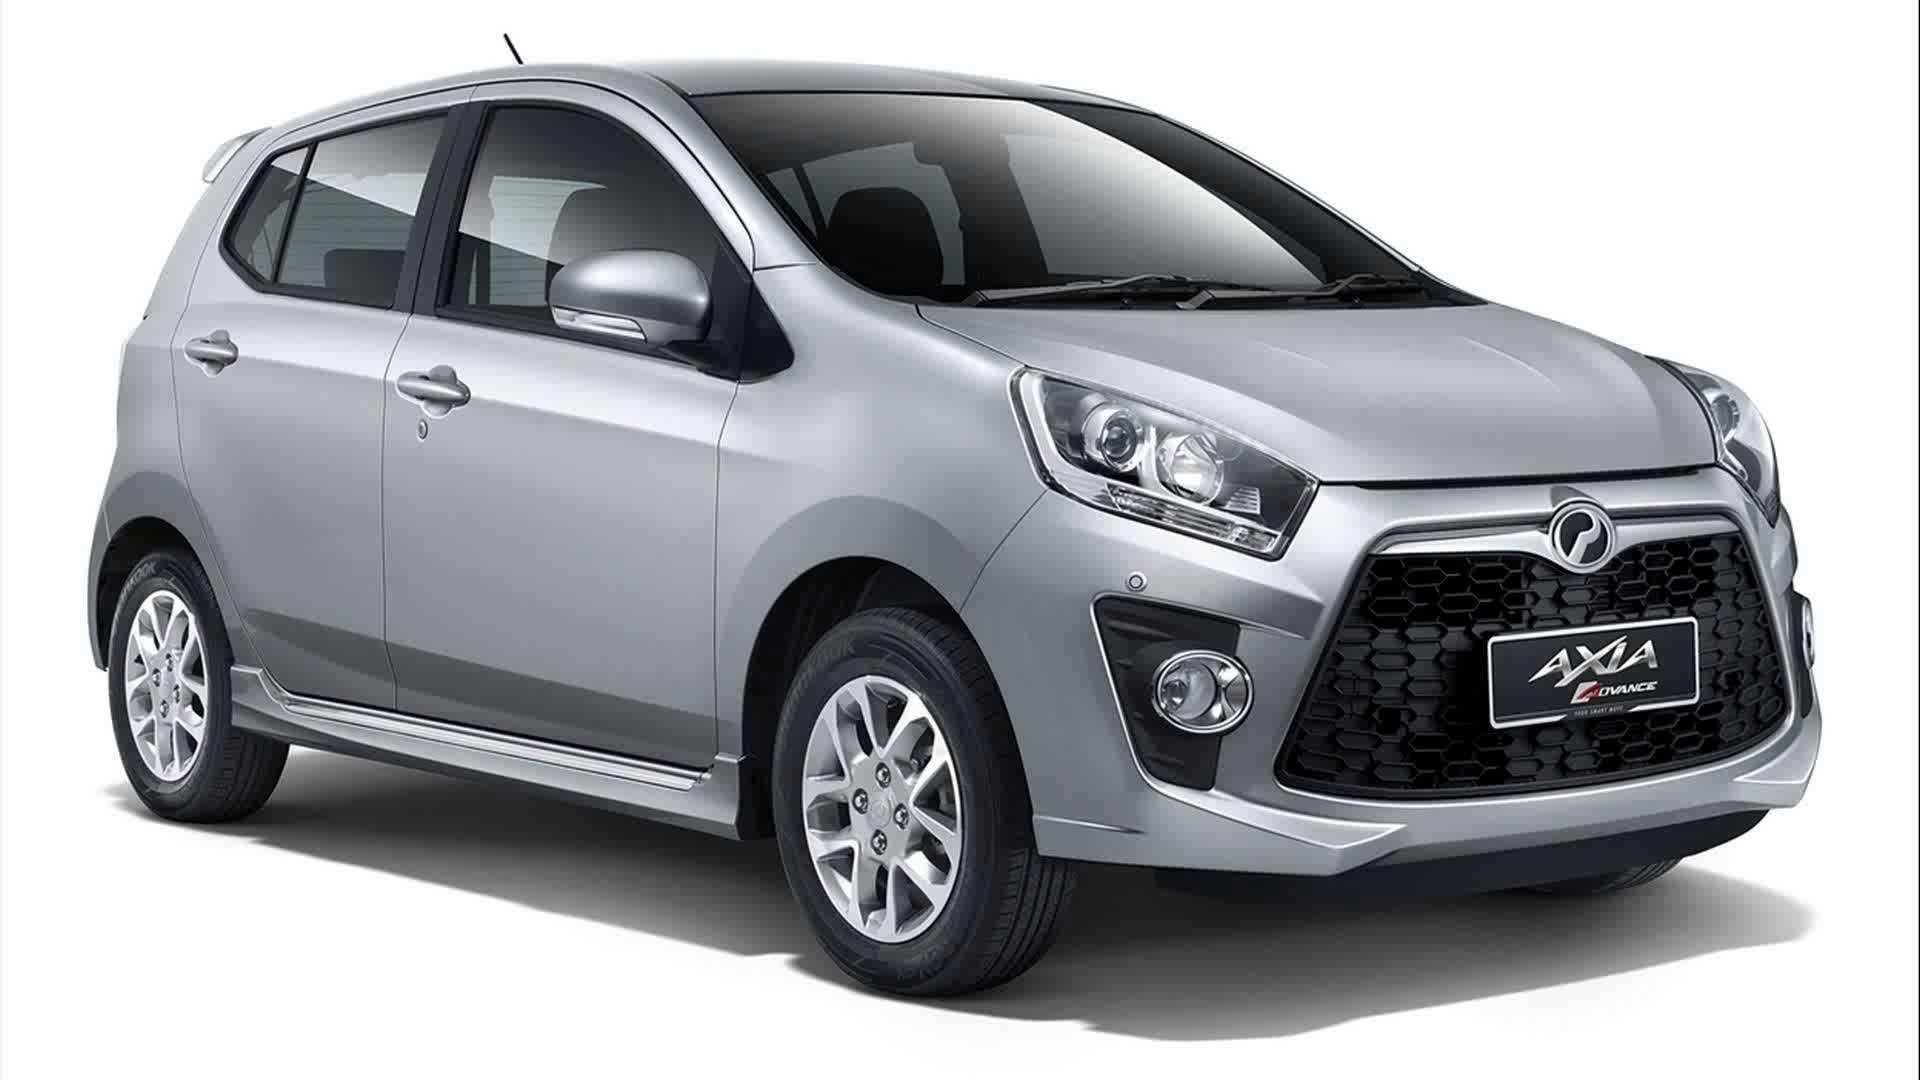 Starting off with the baseline axia model the car offers a very spacious interior for its size a brand new eco friendly energy efficient engine and a new